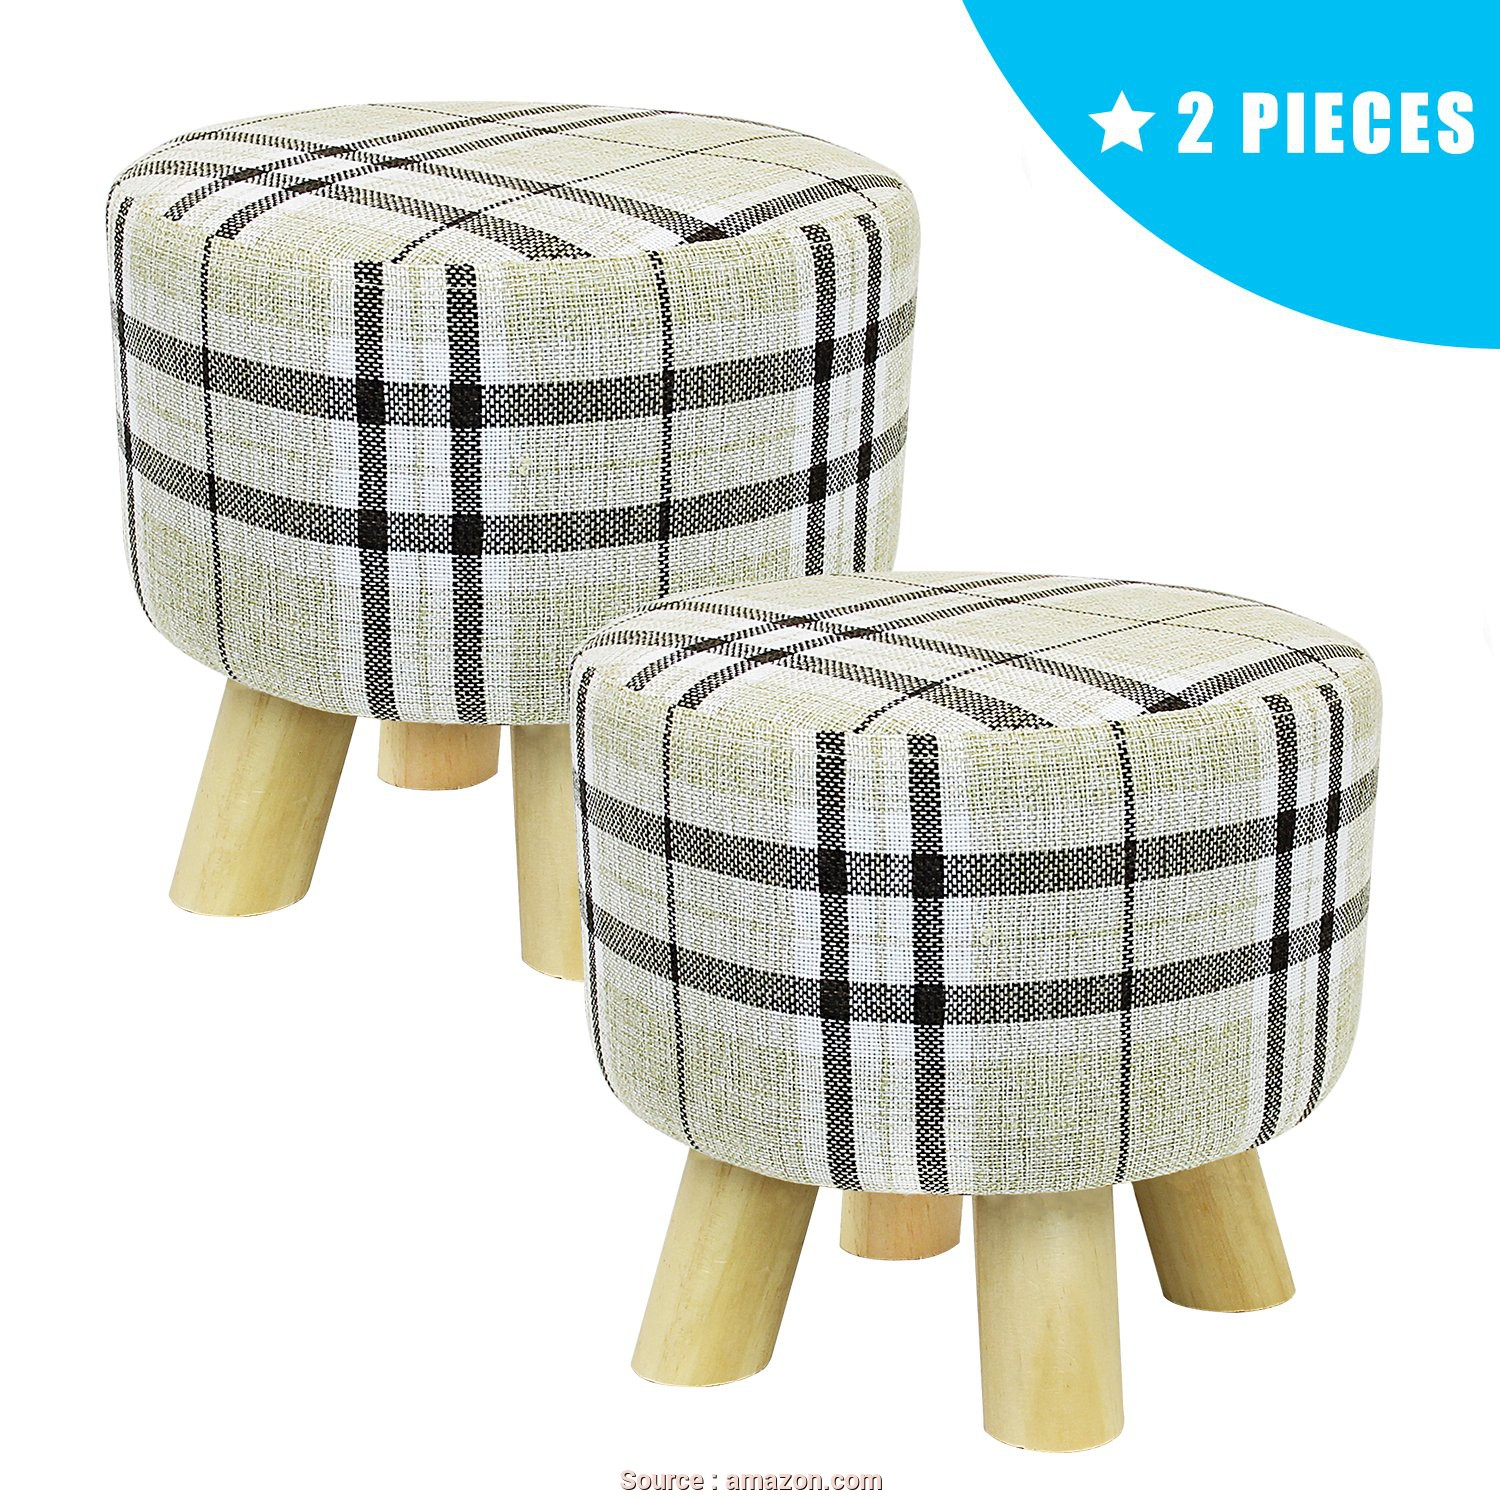 Amazon Plaid, Divano, Completare Jerry & Maggie, Pieces Footstool Fabric Ottomans Cute Bench Seat Foot Rest Step Stool Soft Bottom, With Feet Protection Design, Round, Legs